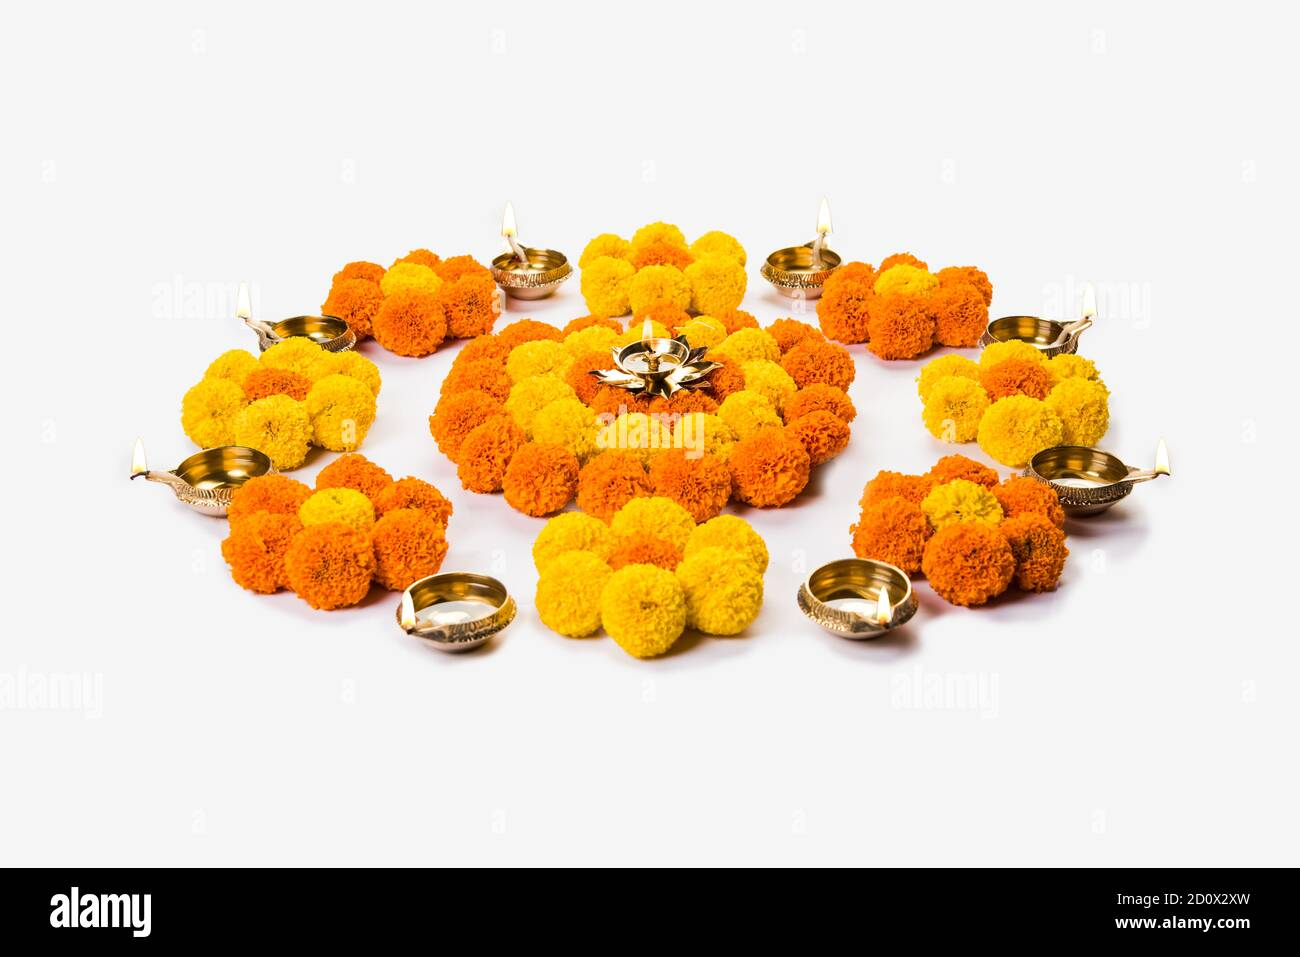 Flower Rangoli For Diwali Or Pongal Festival Made Using Marigold Or Zendu Flowers And Rose Petals Over Moody Or White Background Selective Focus Stock Photo Alamy